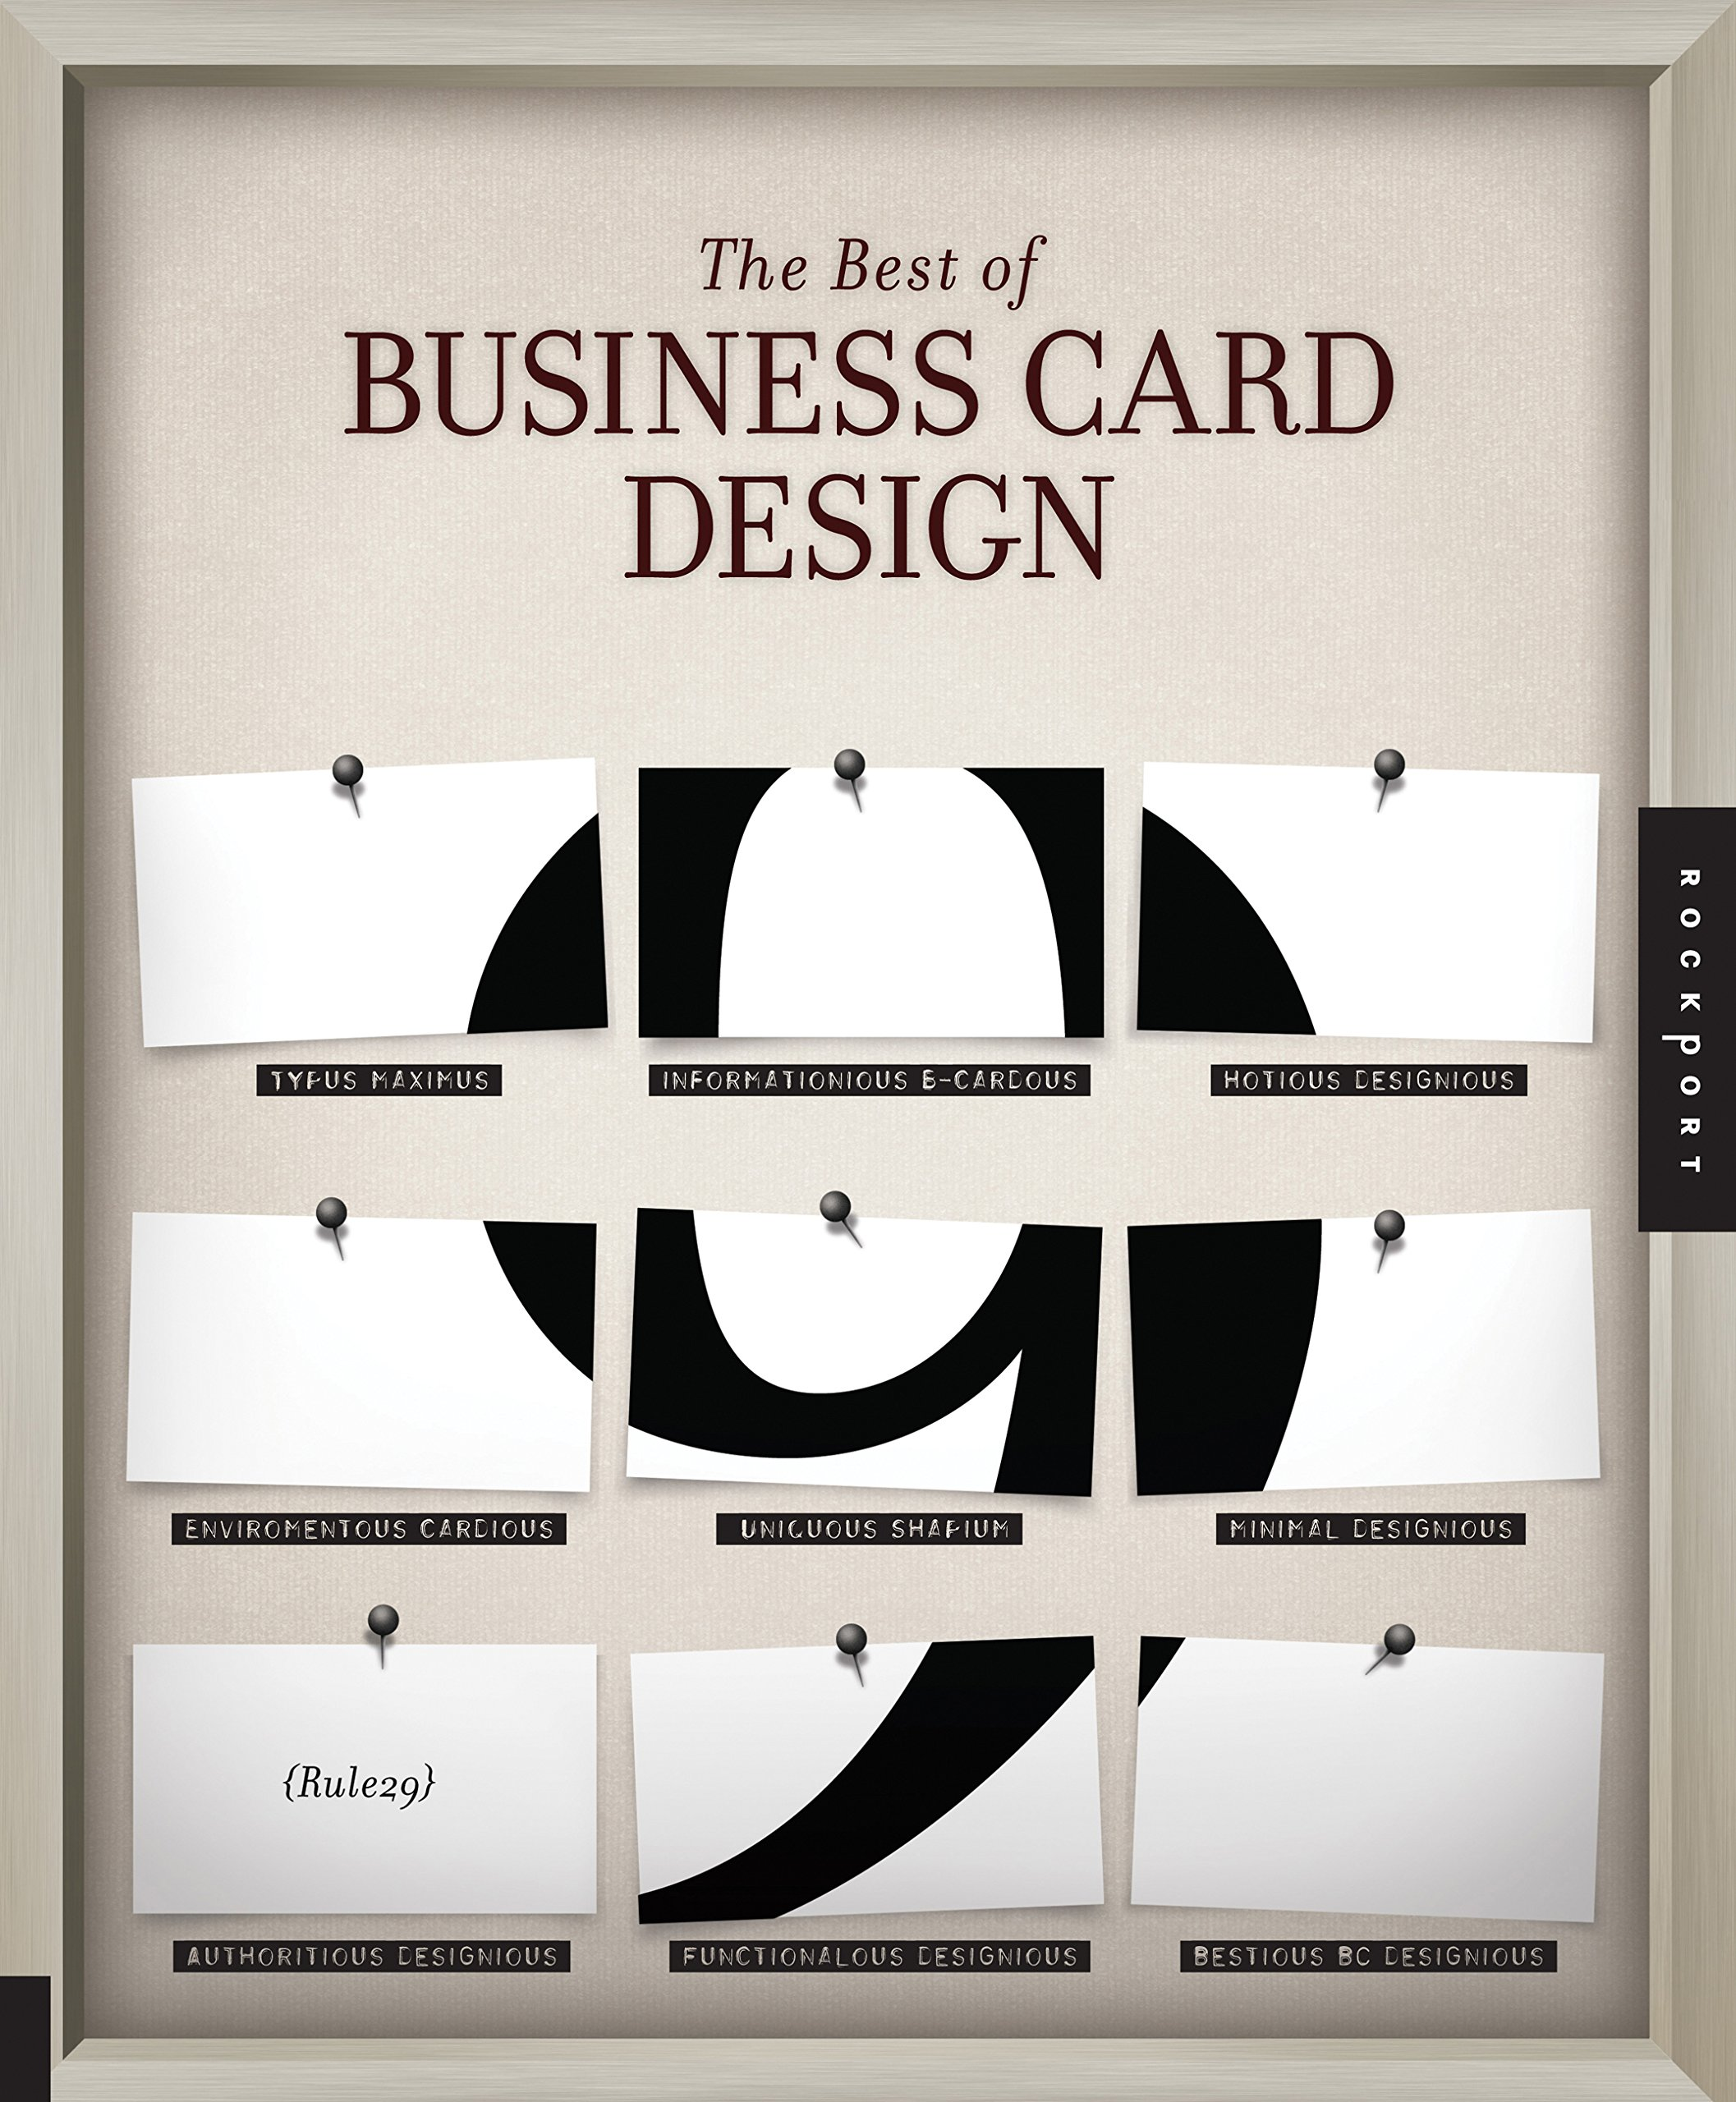 the-best-of-business-card-design-9